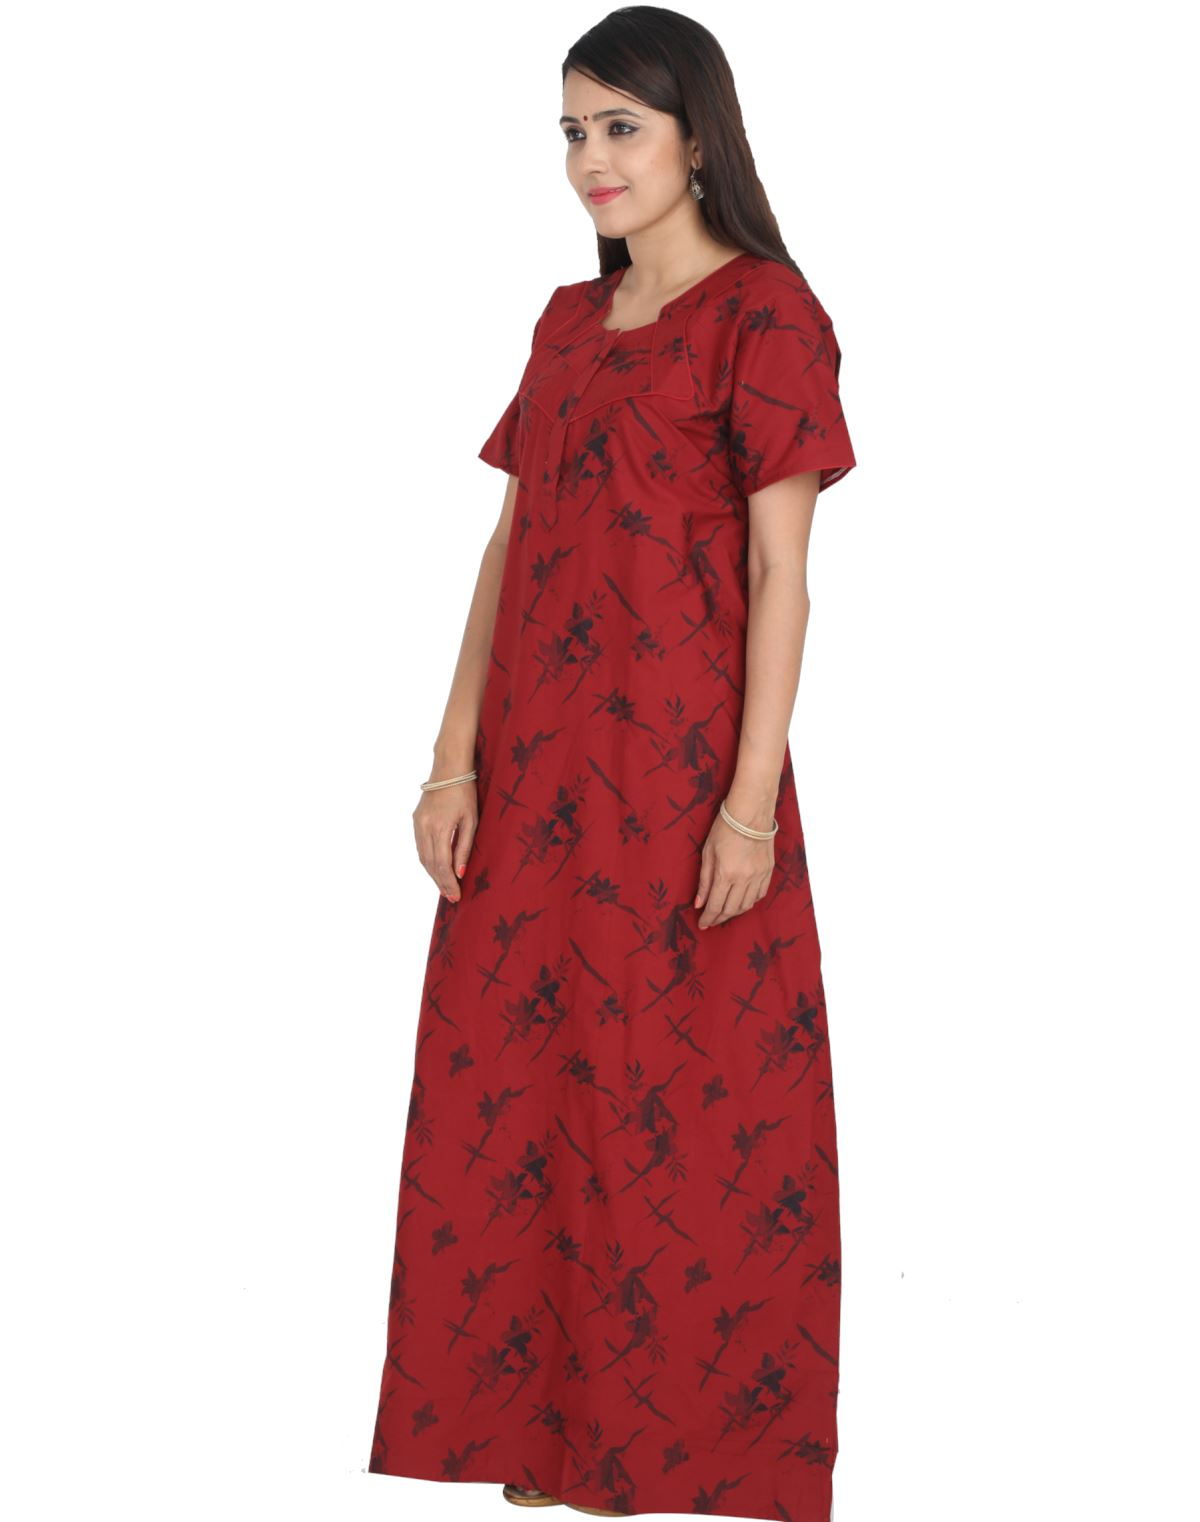 76f5346818 Womens Full Length Premium Cotton Nightgown - Front zip - Slim Fit